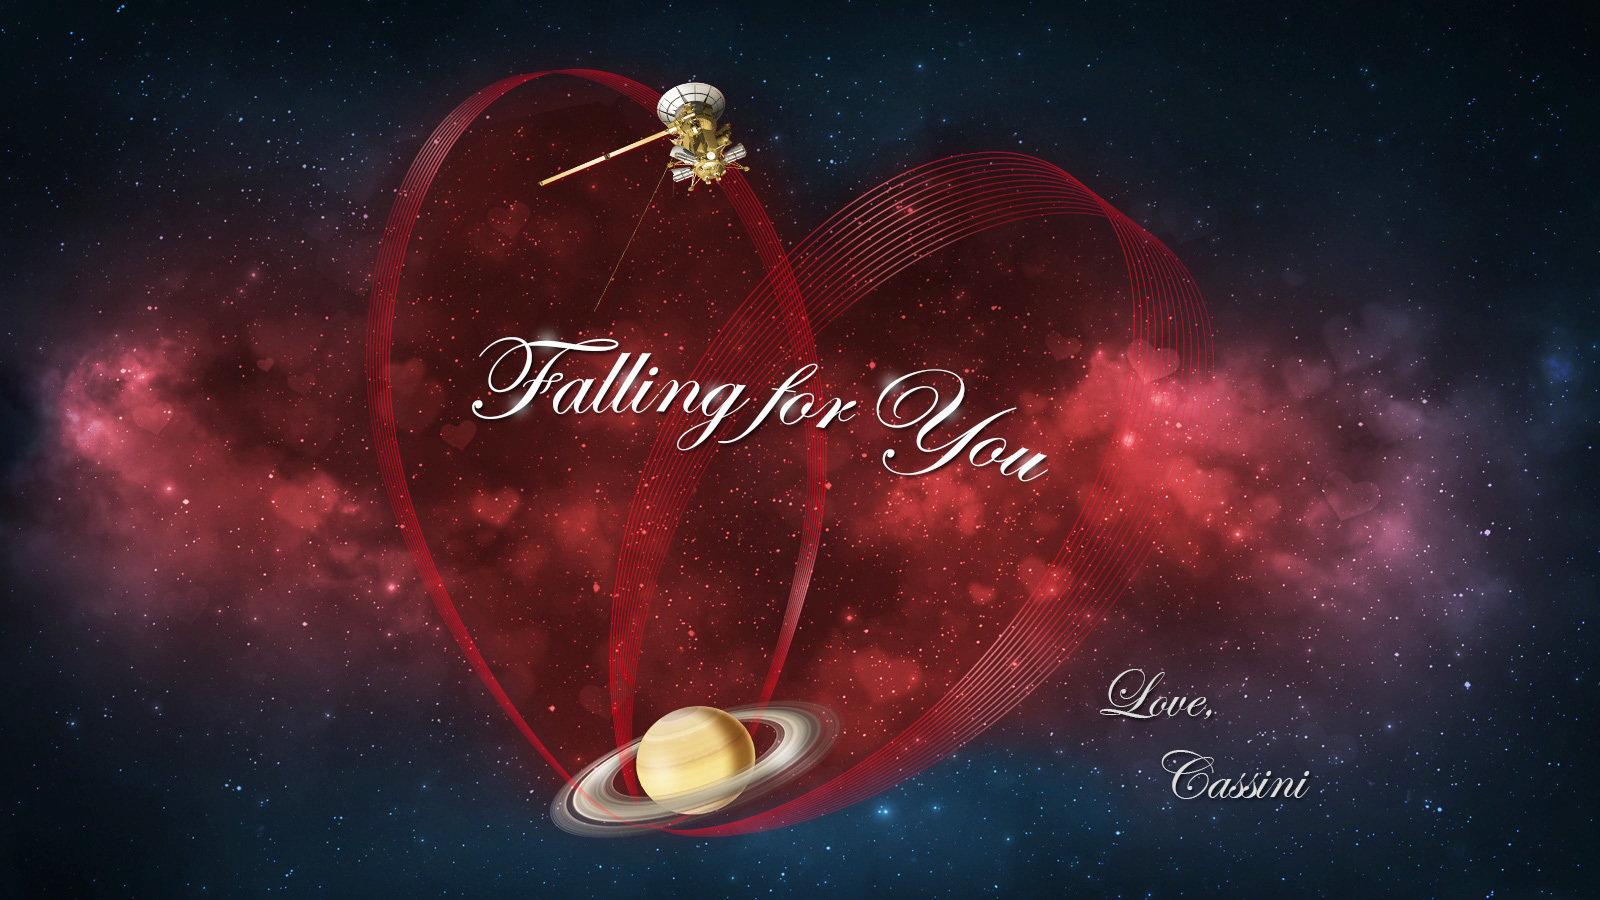 Happy Valentine's Day from Cassini at Saturn.